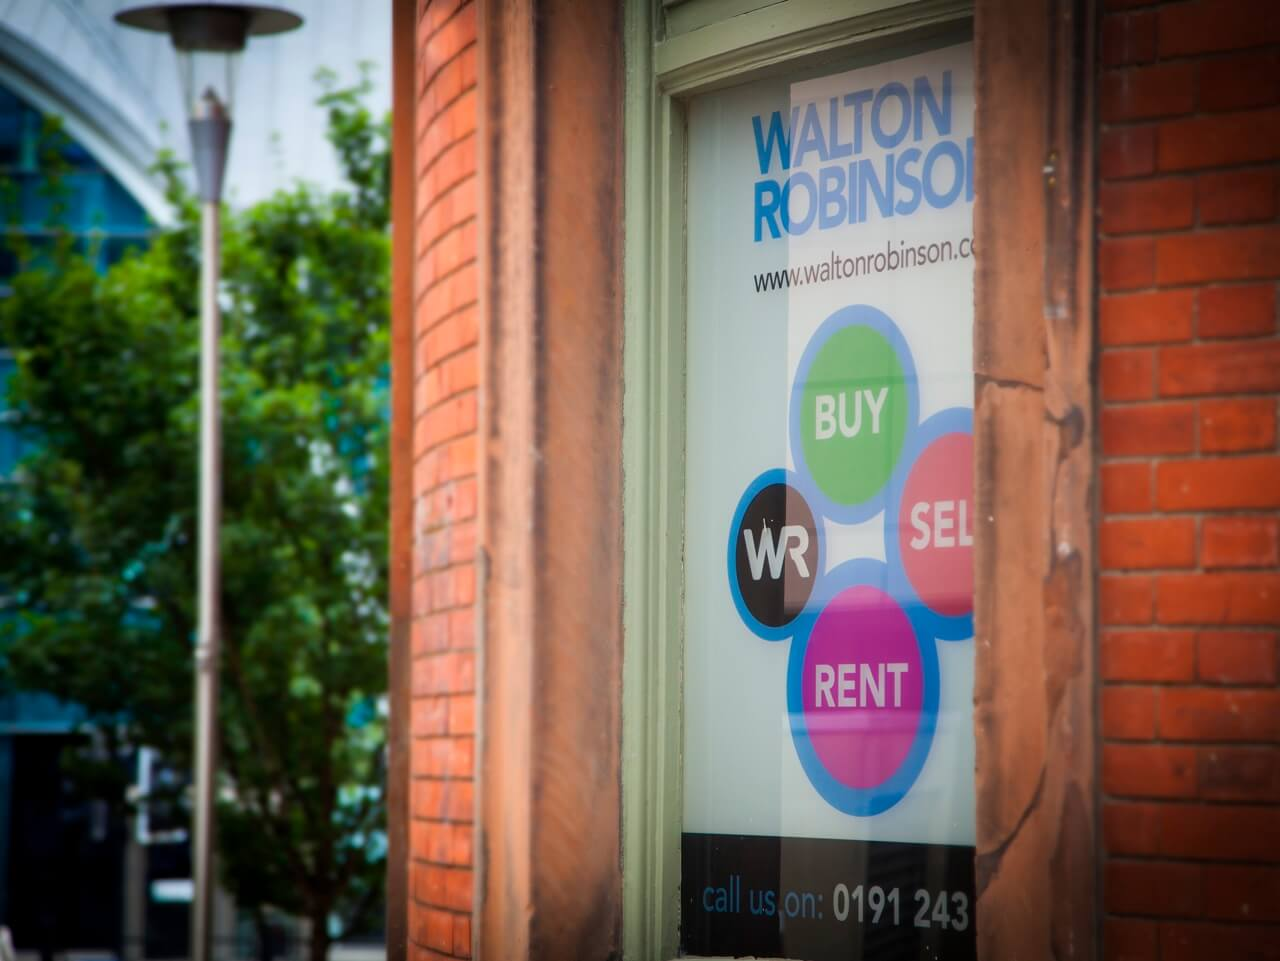 A Walton Robinson services poster displayed in a window of the office